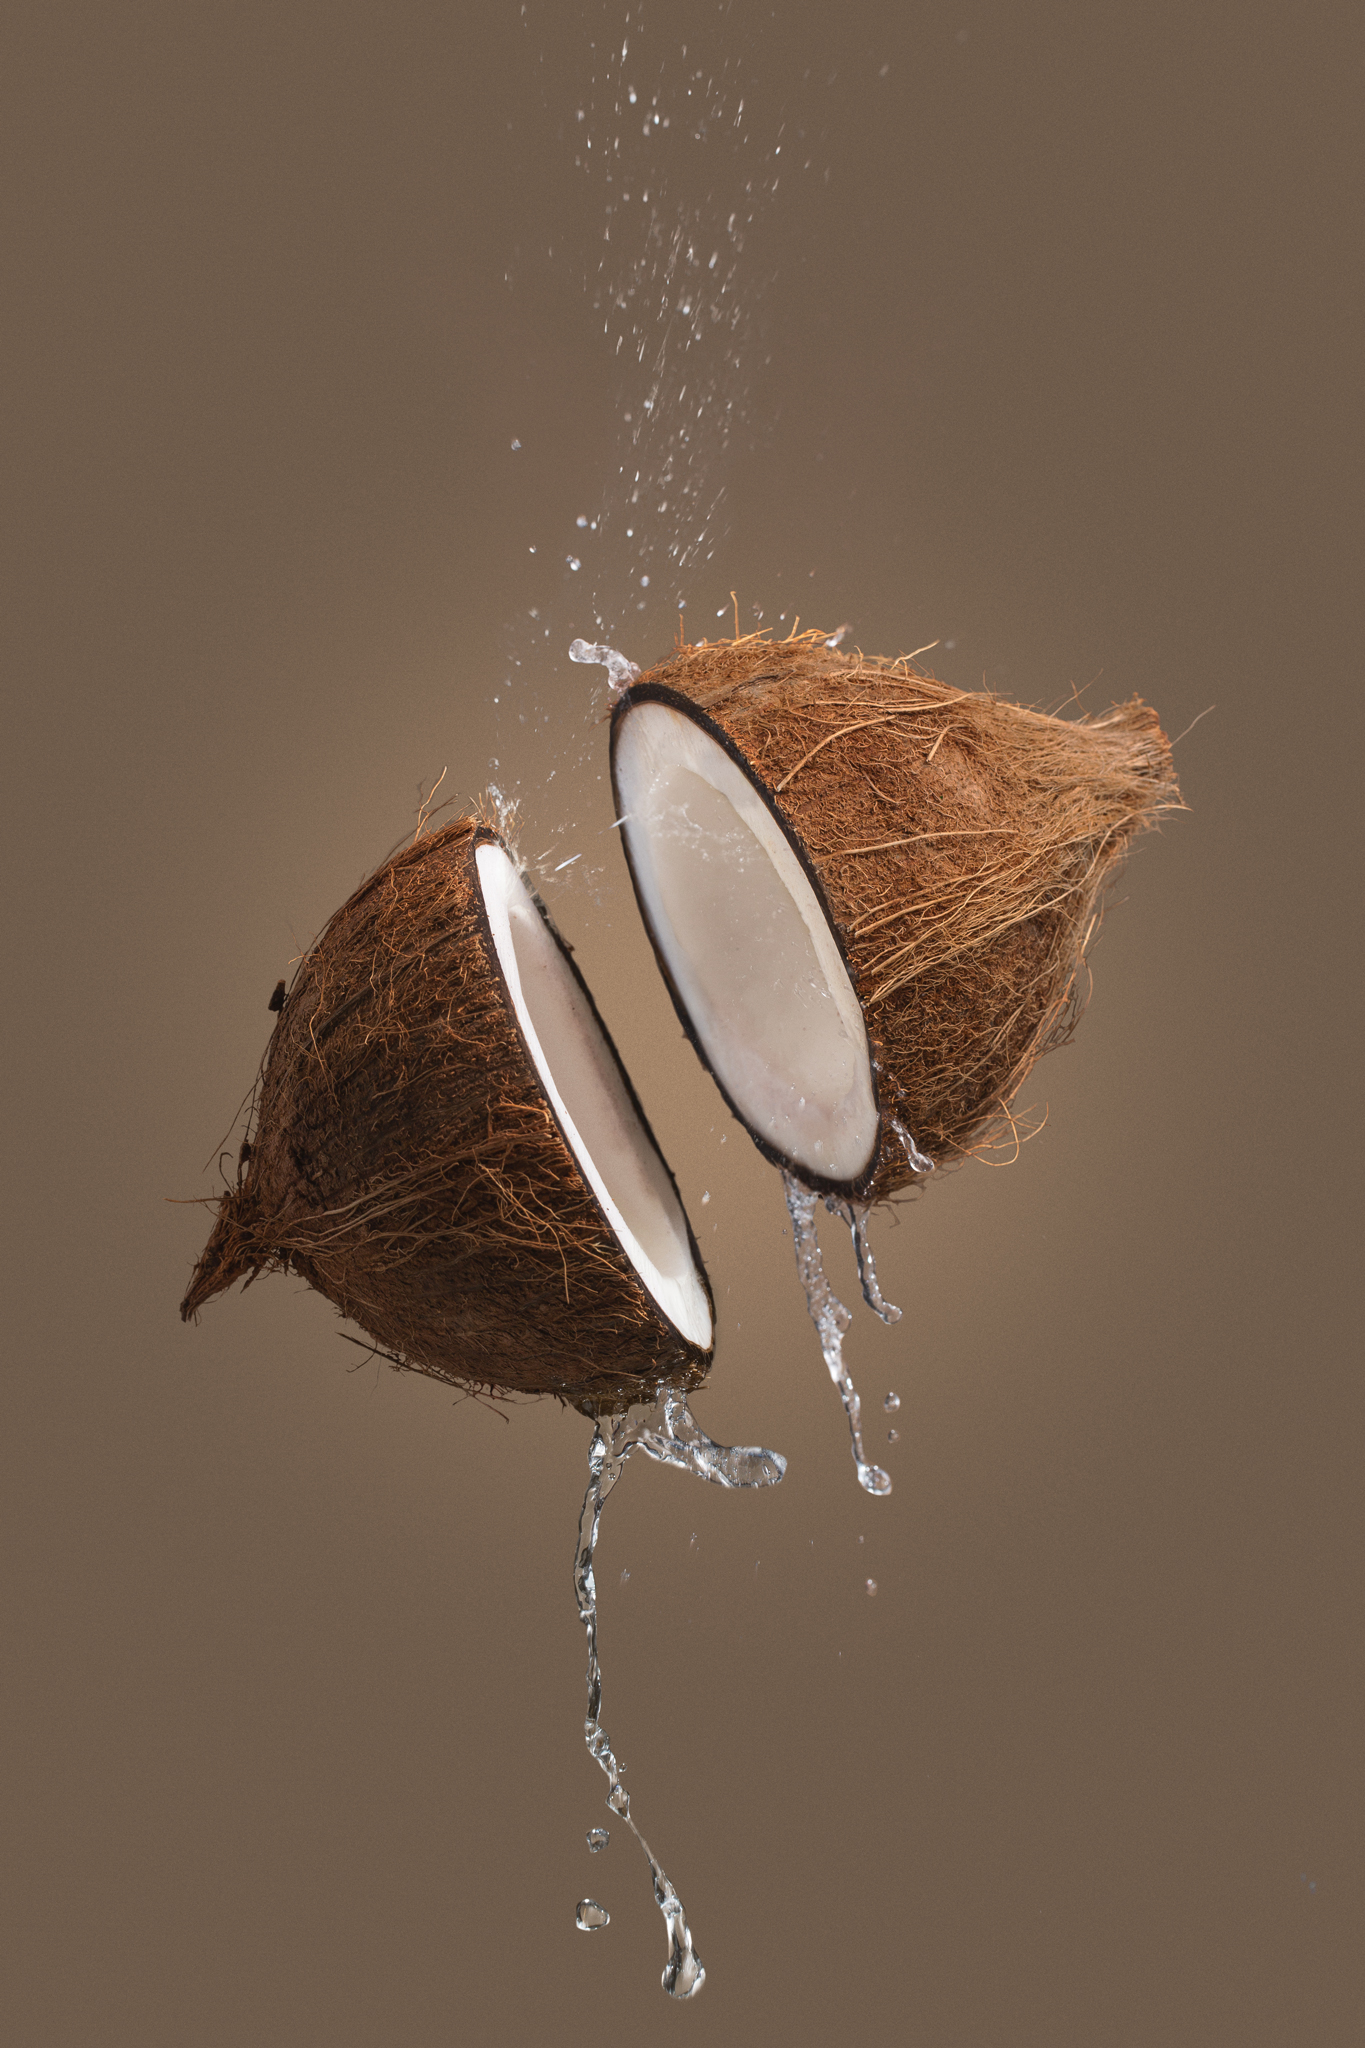 Ninja-Fruits-Coconut.jpg